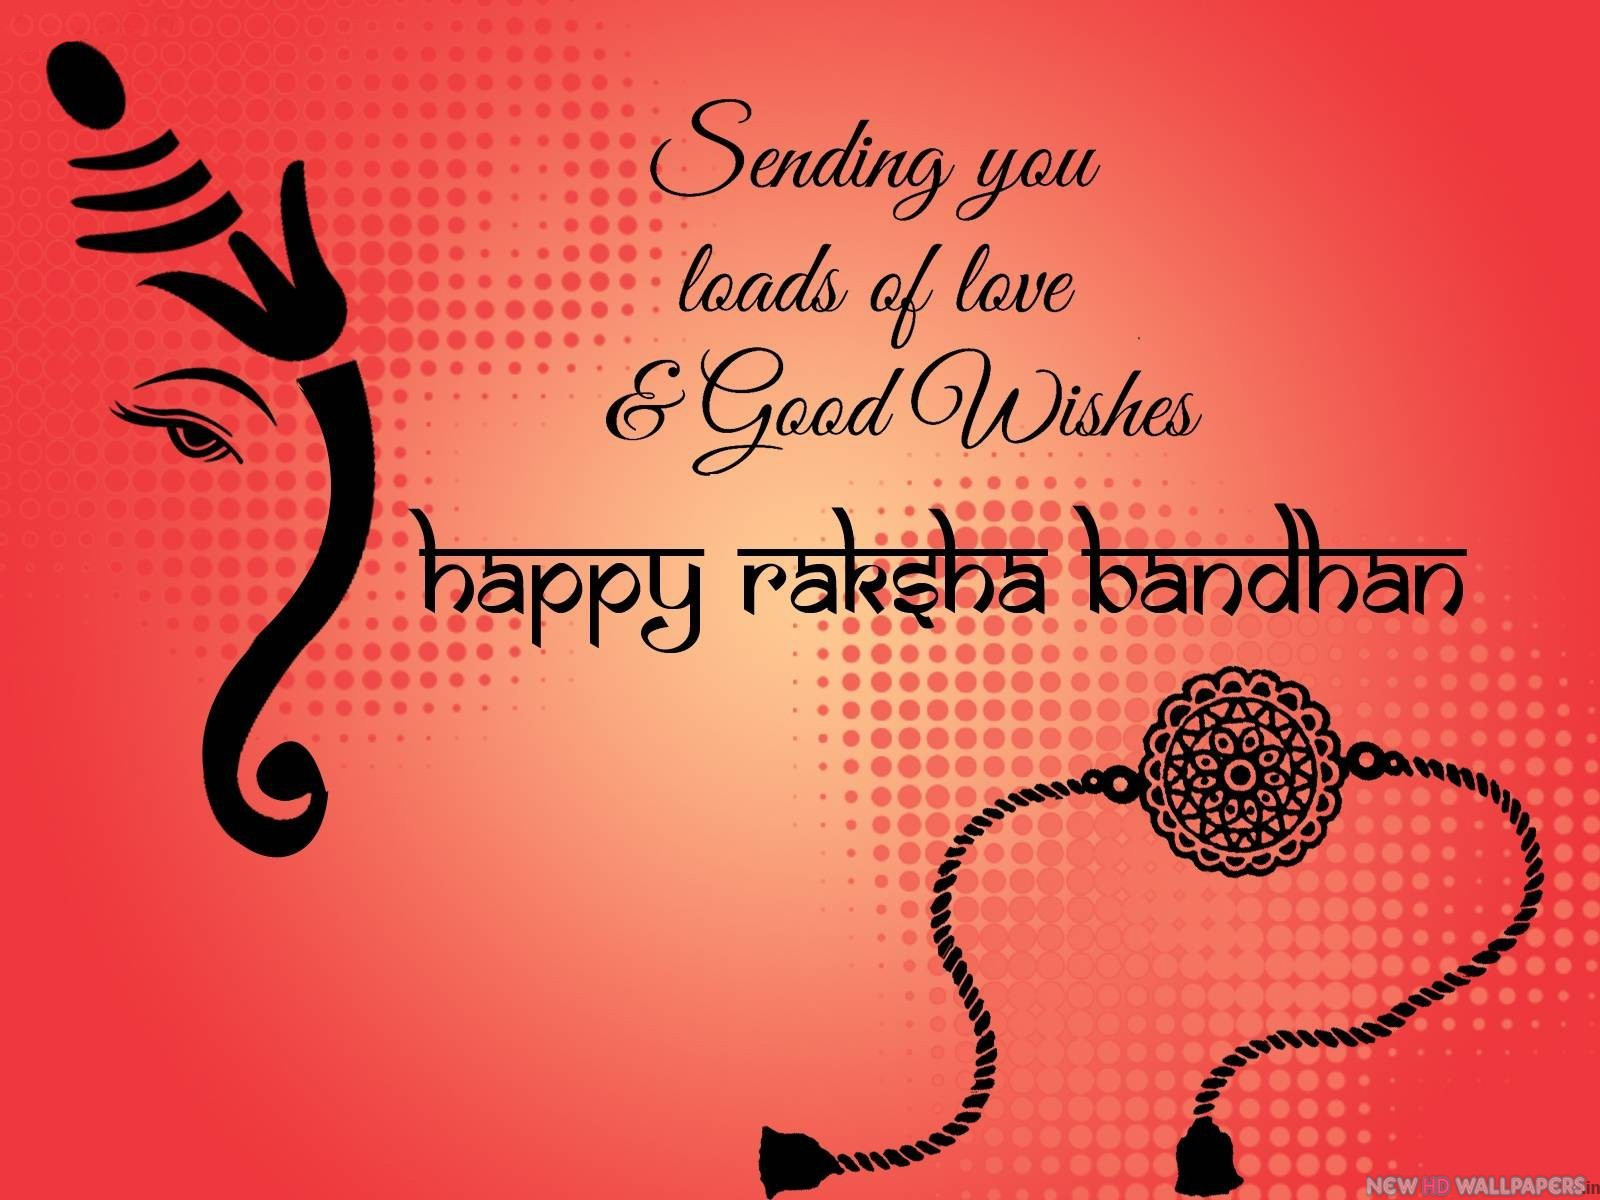 happy-raksha-bandhan-wishes 2015